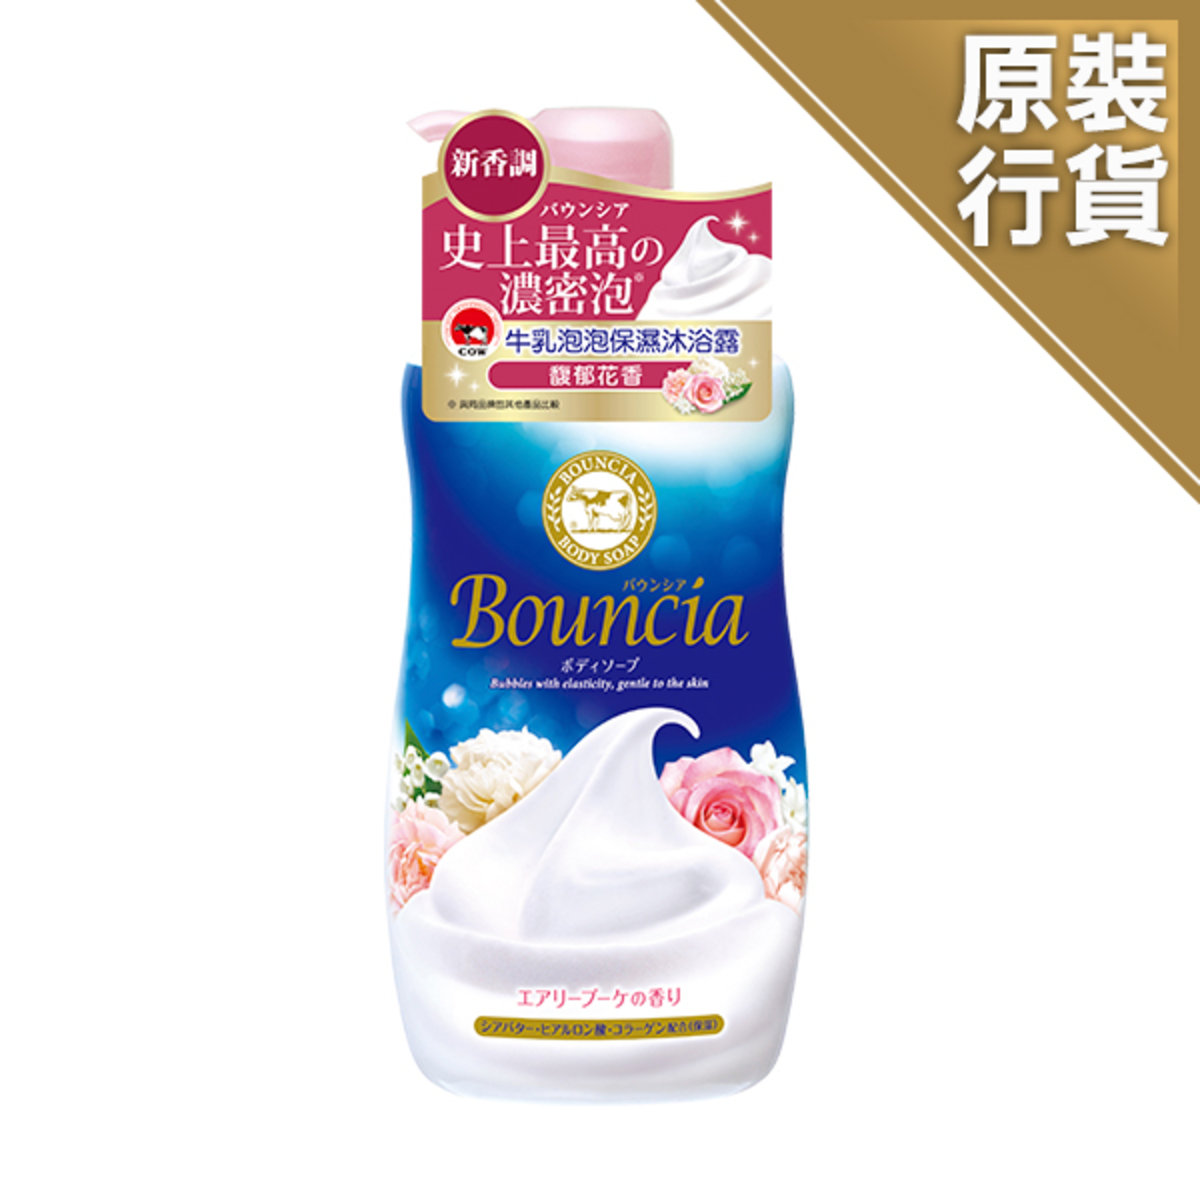 Bouncia Body Soap (Airy Bouquet)